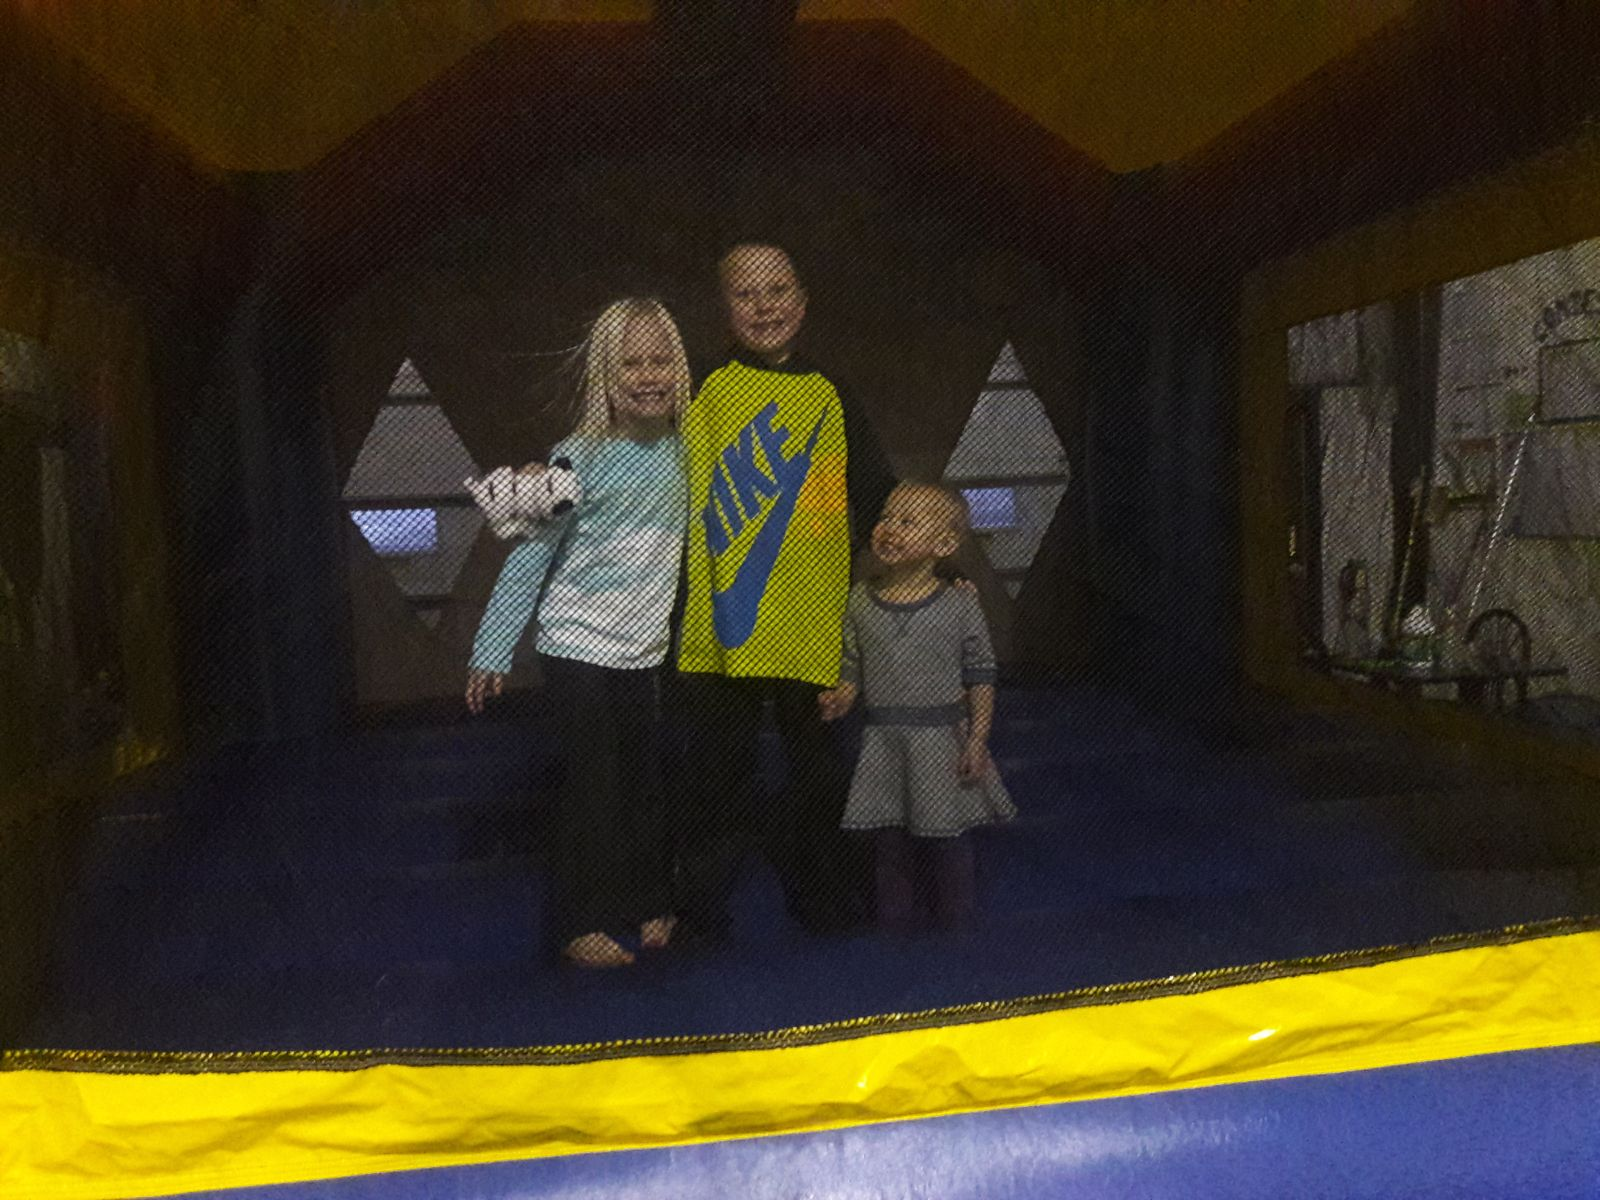 3 Kids inside Justice League Bounce House